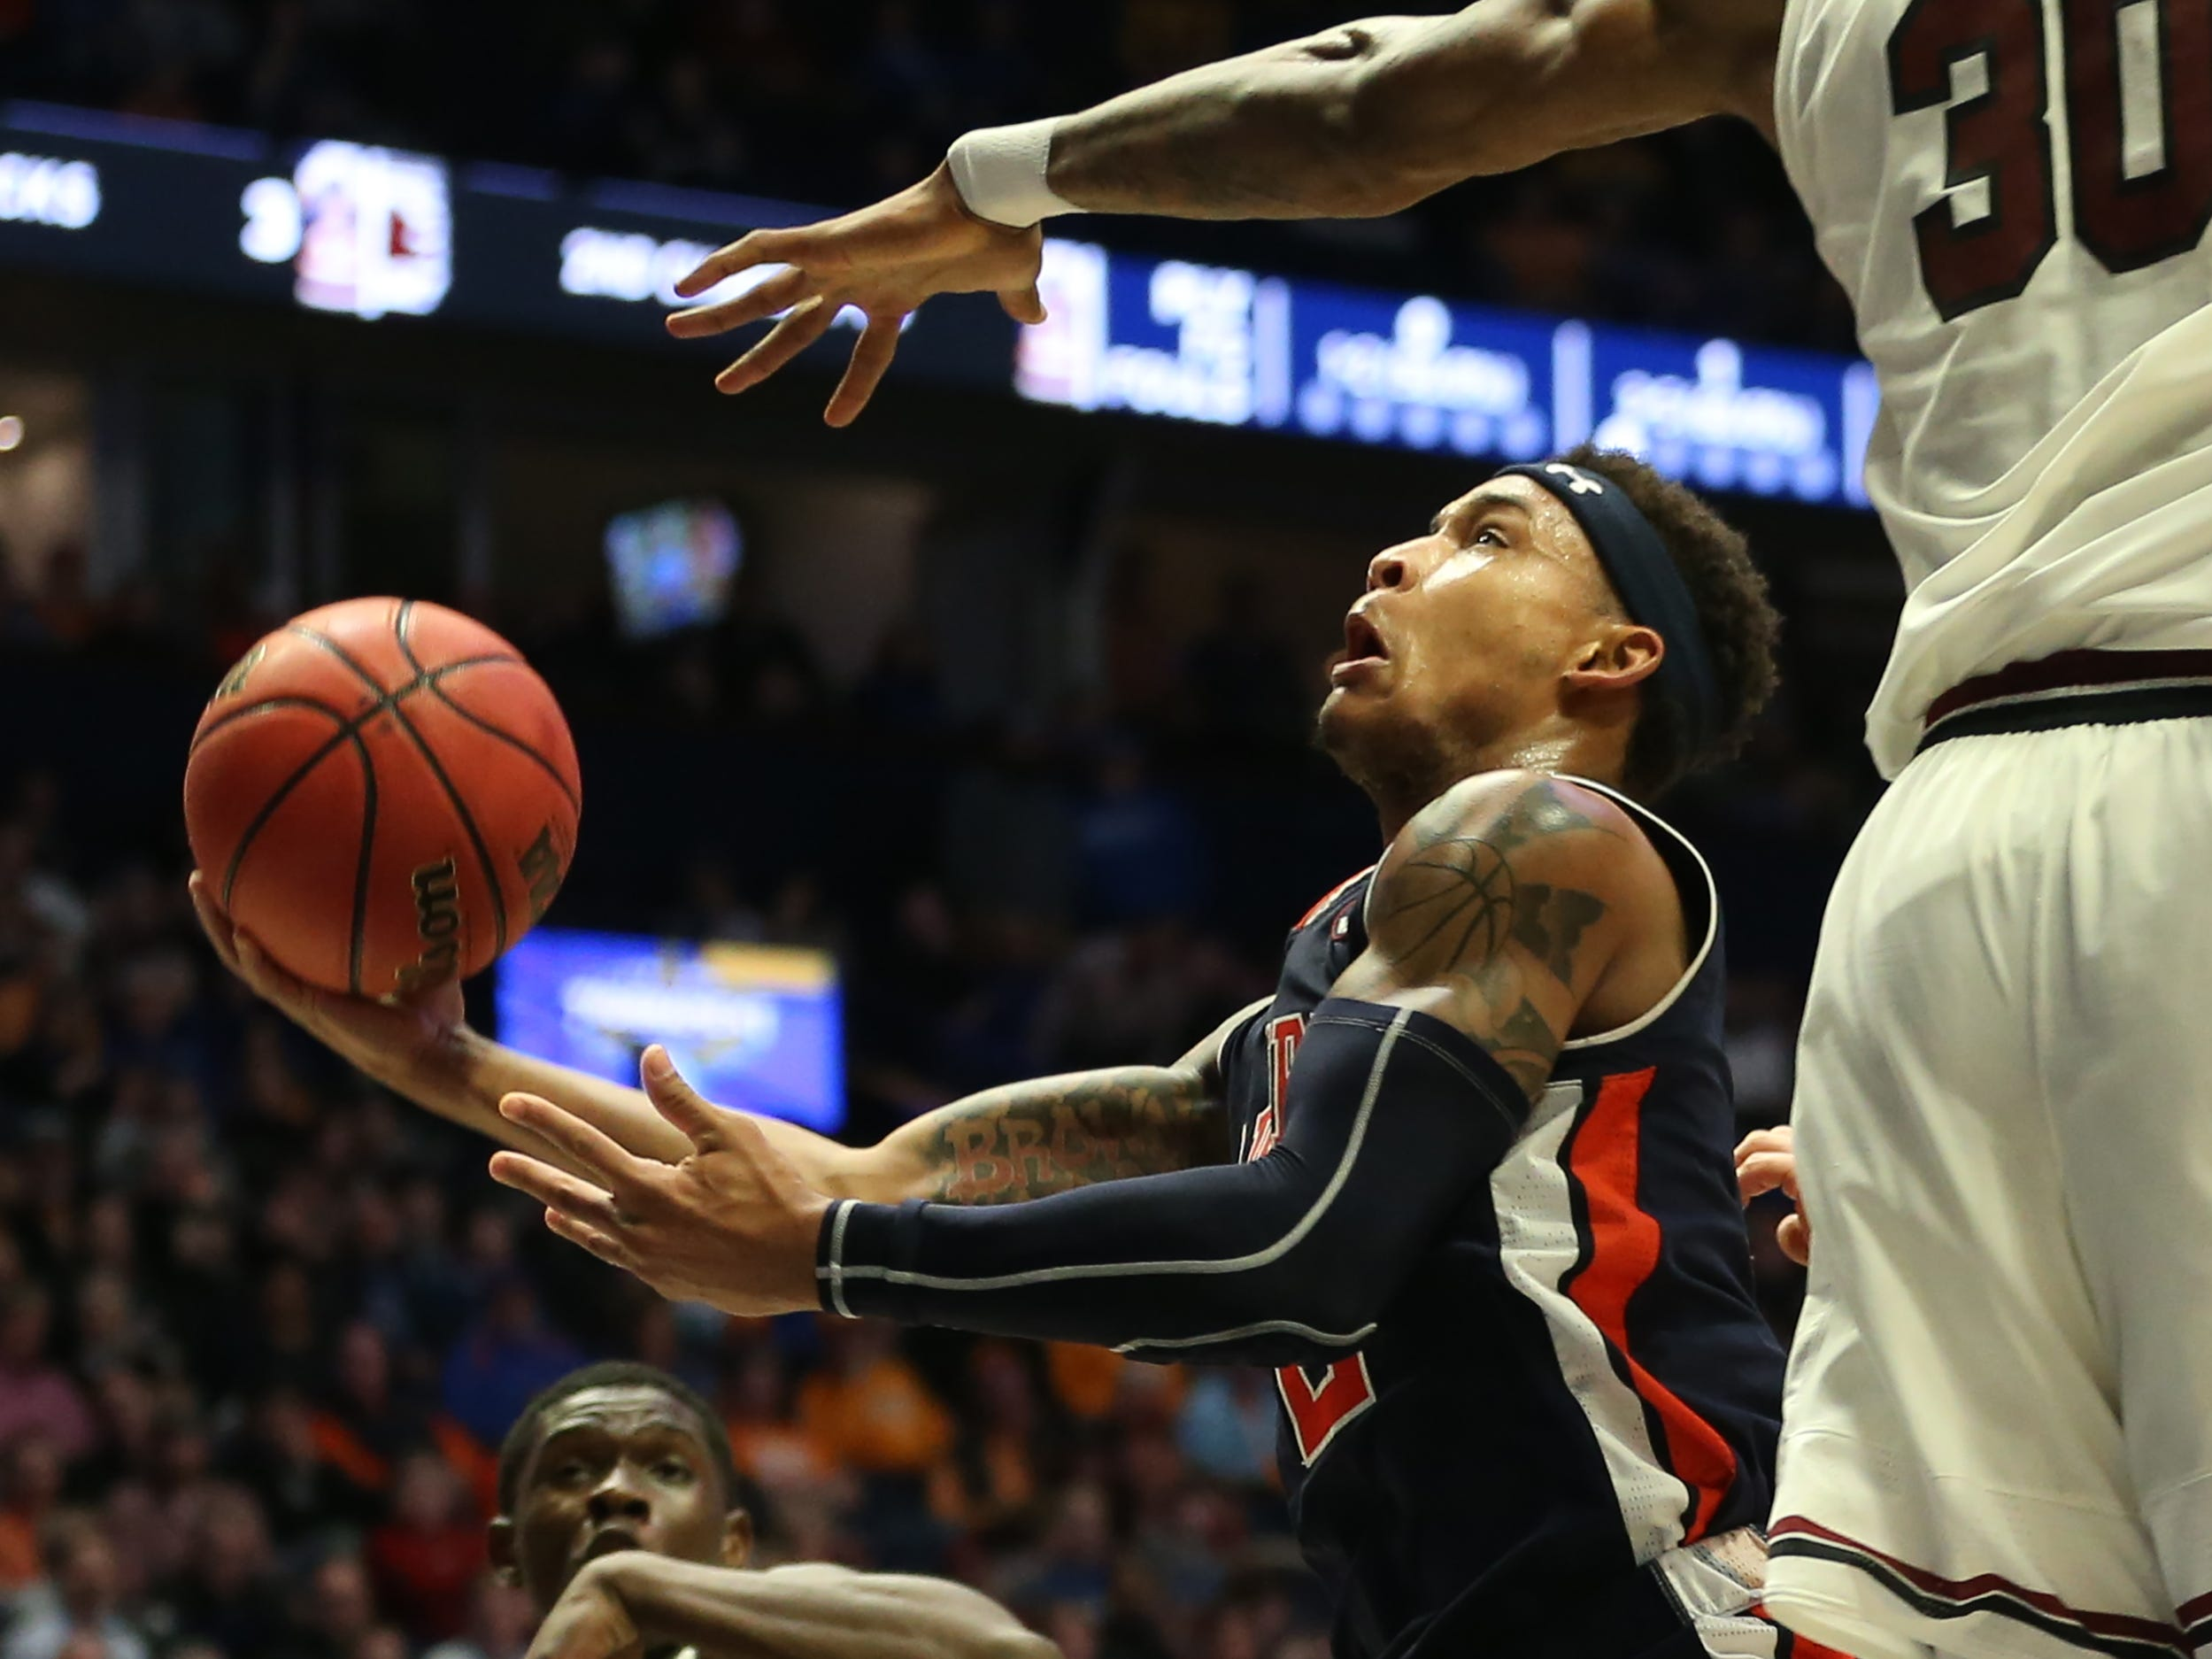 Auburn guard Bryce Brown (2) goes up for a shot during the first half of the SEC Men's Basketball Tournament game against South Carolina at Bridgestone Arena in Nashville, Tenn., Friday, March 15, 2019.